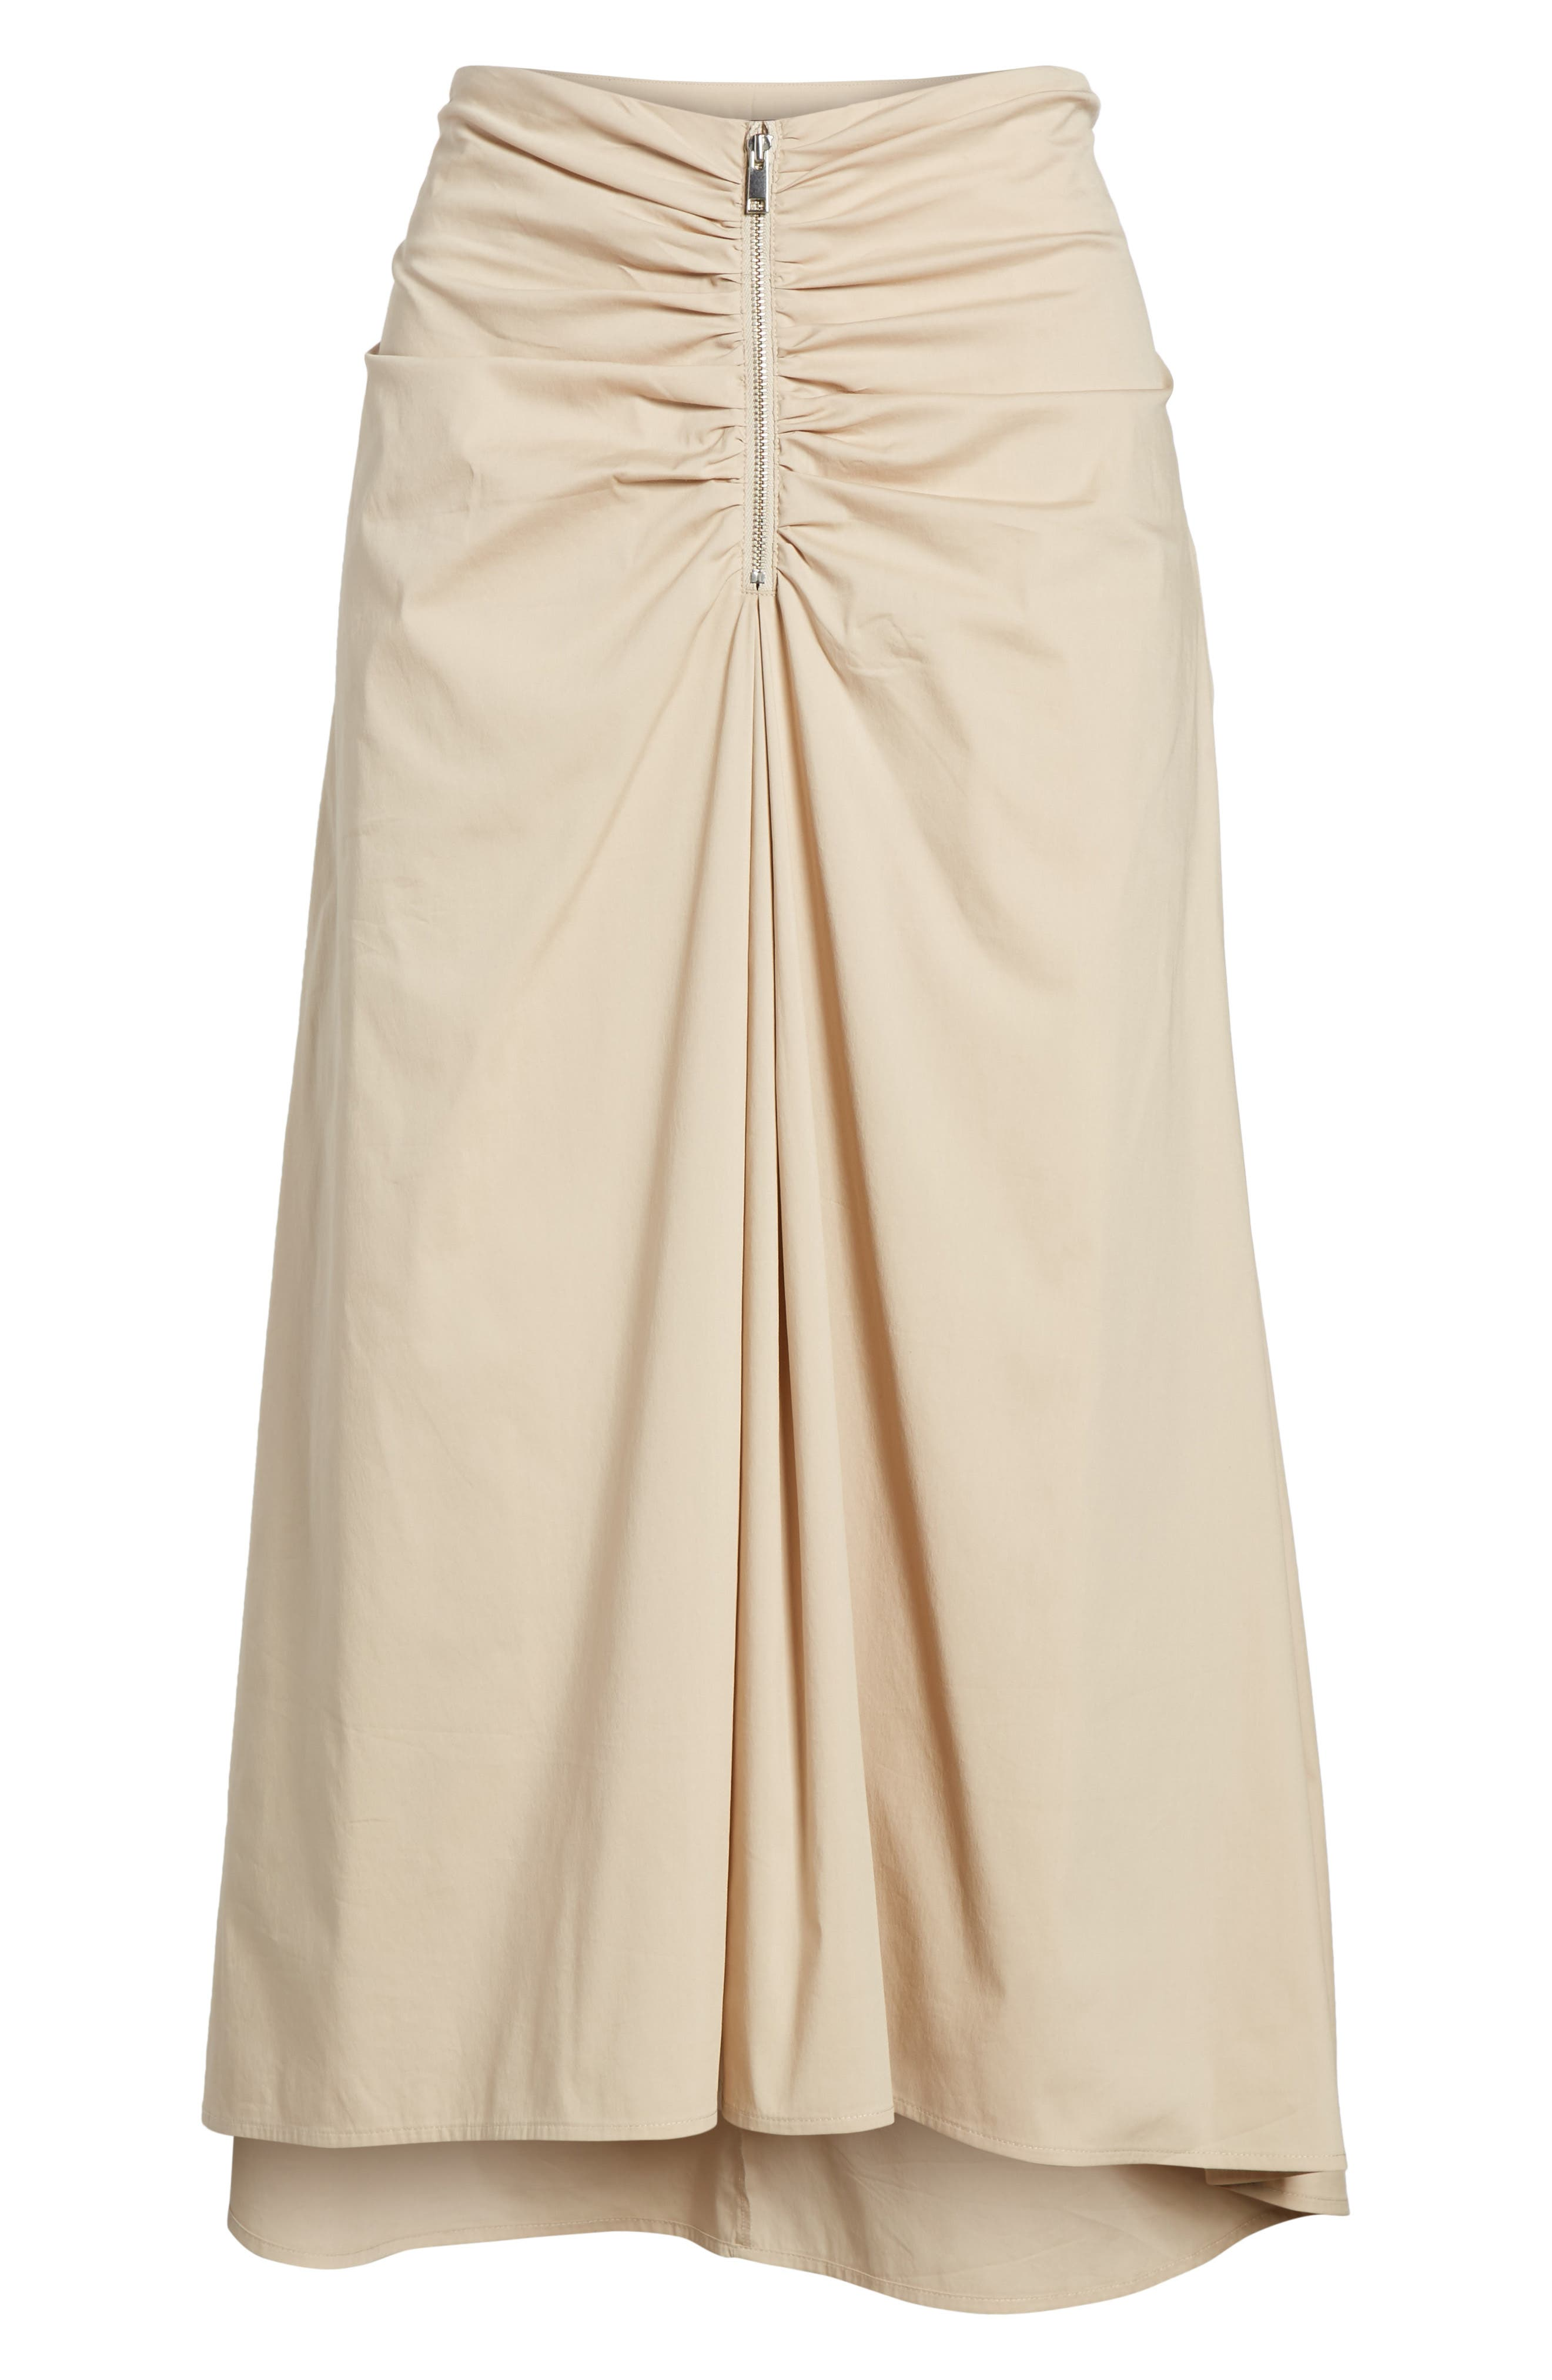 Ruched Front Midi Skirt,                             Alternate thumbnail 7, color,                             Tan Oxford